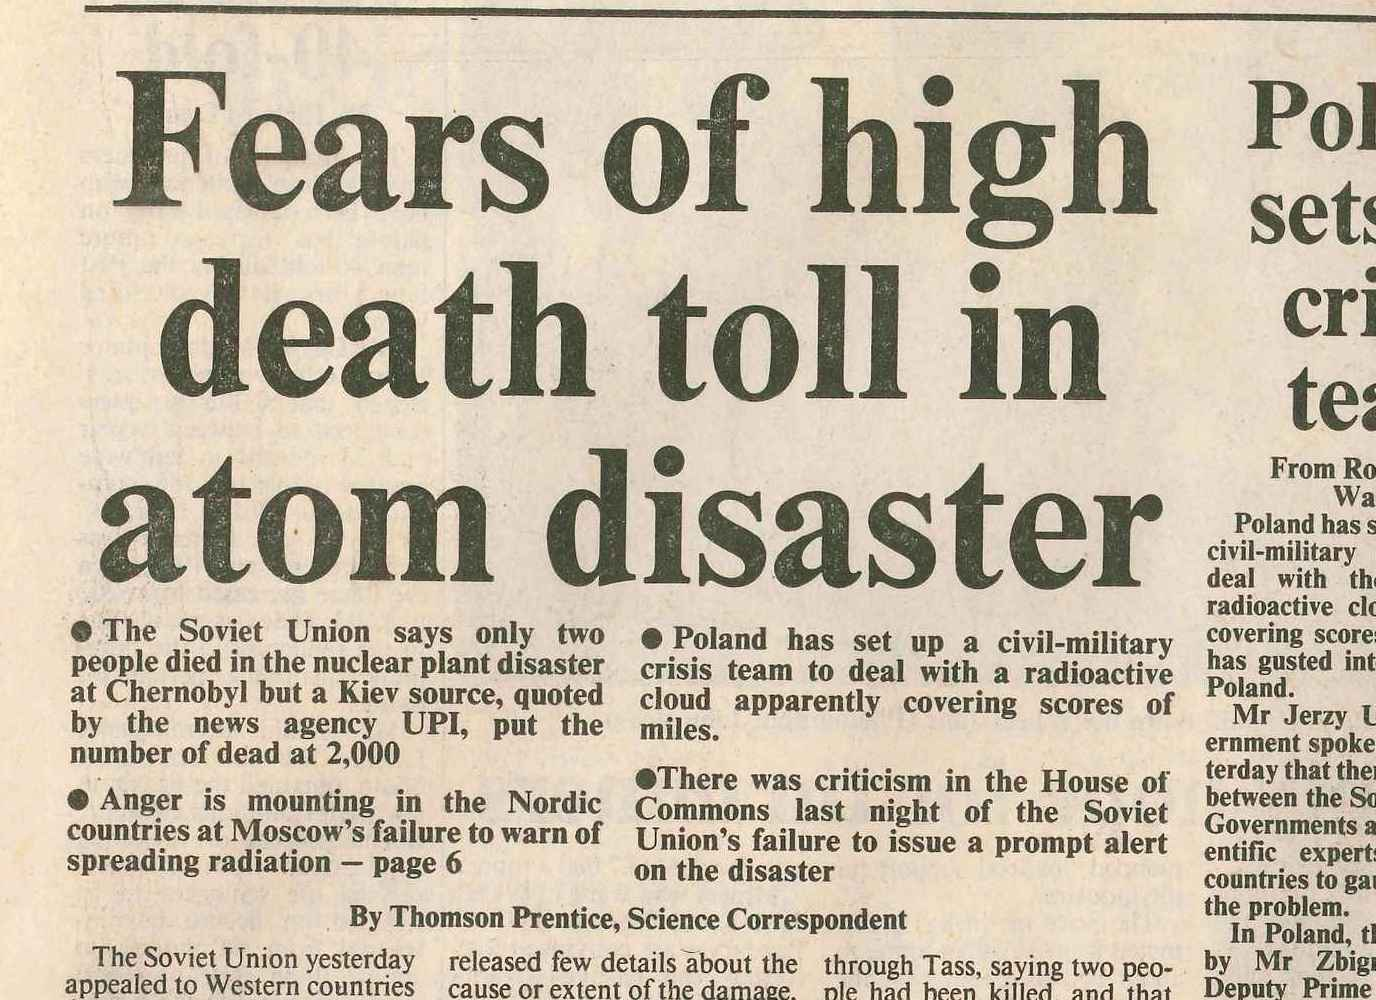 Chernobyl Disaster articles in The Times from 30 April 1986